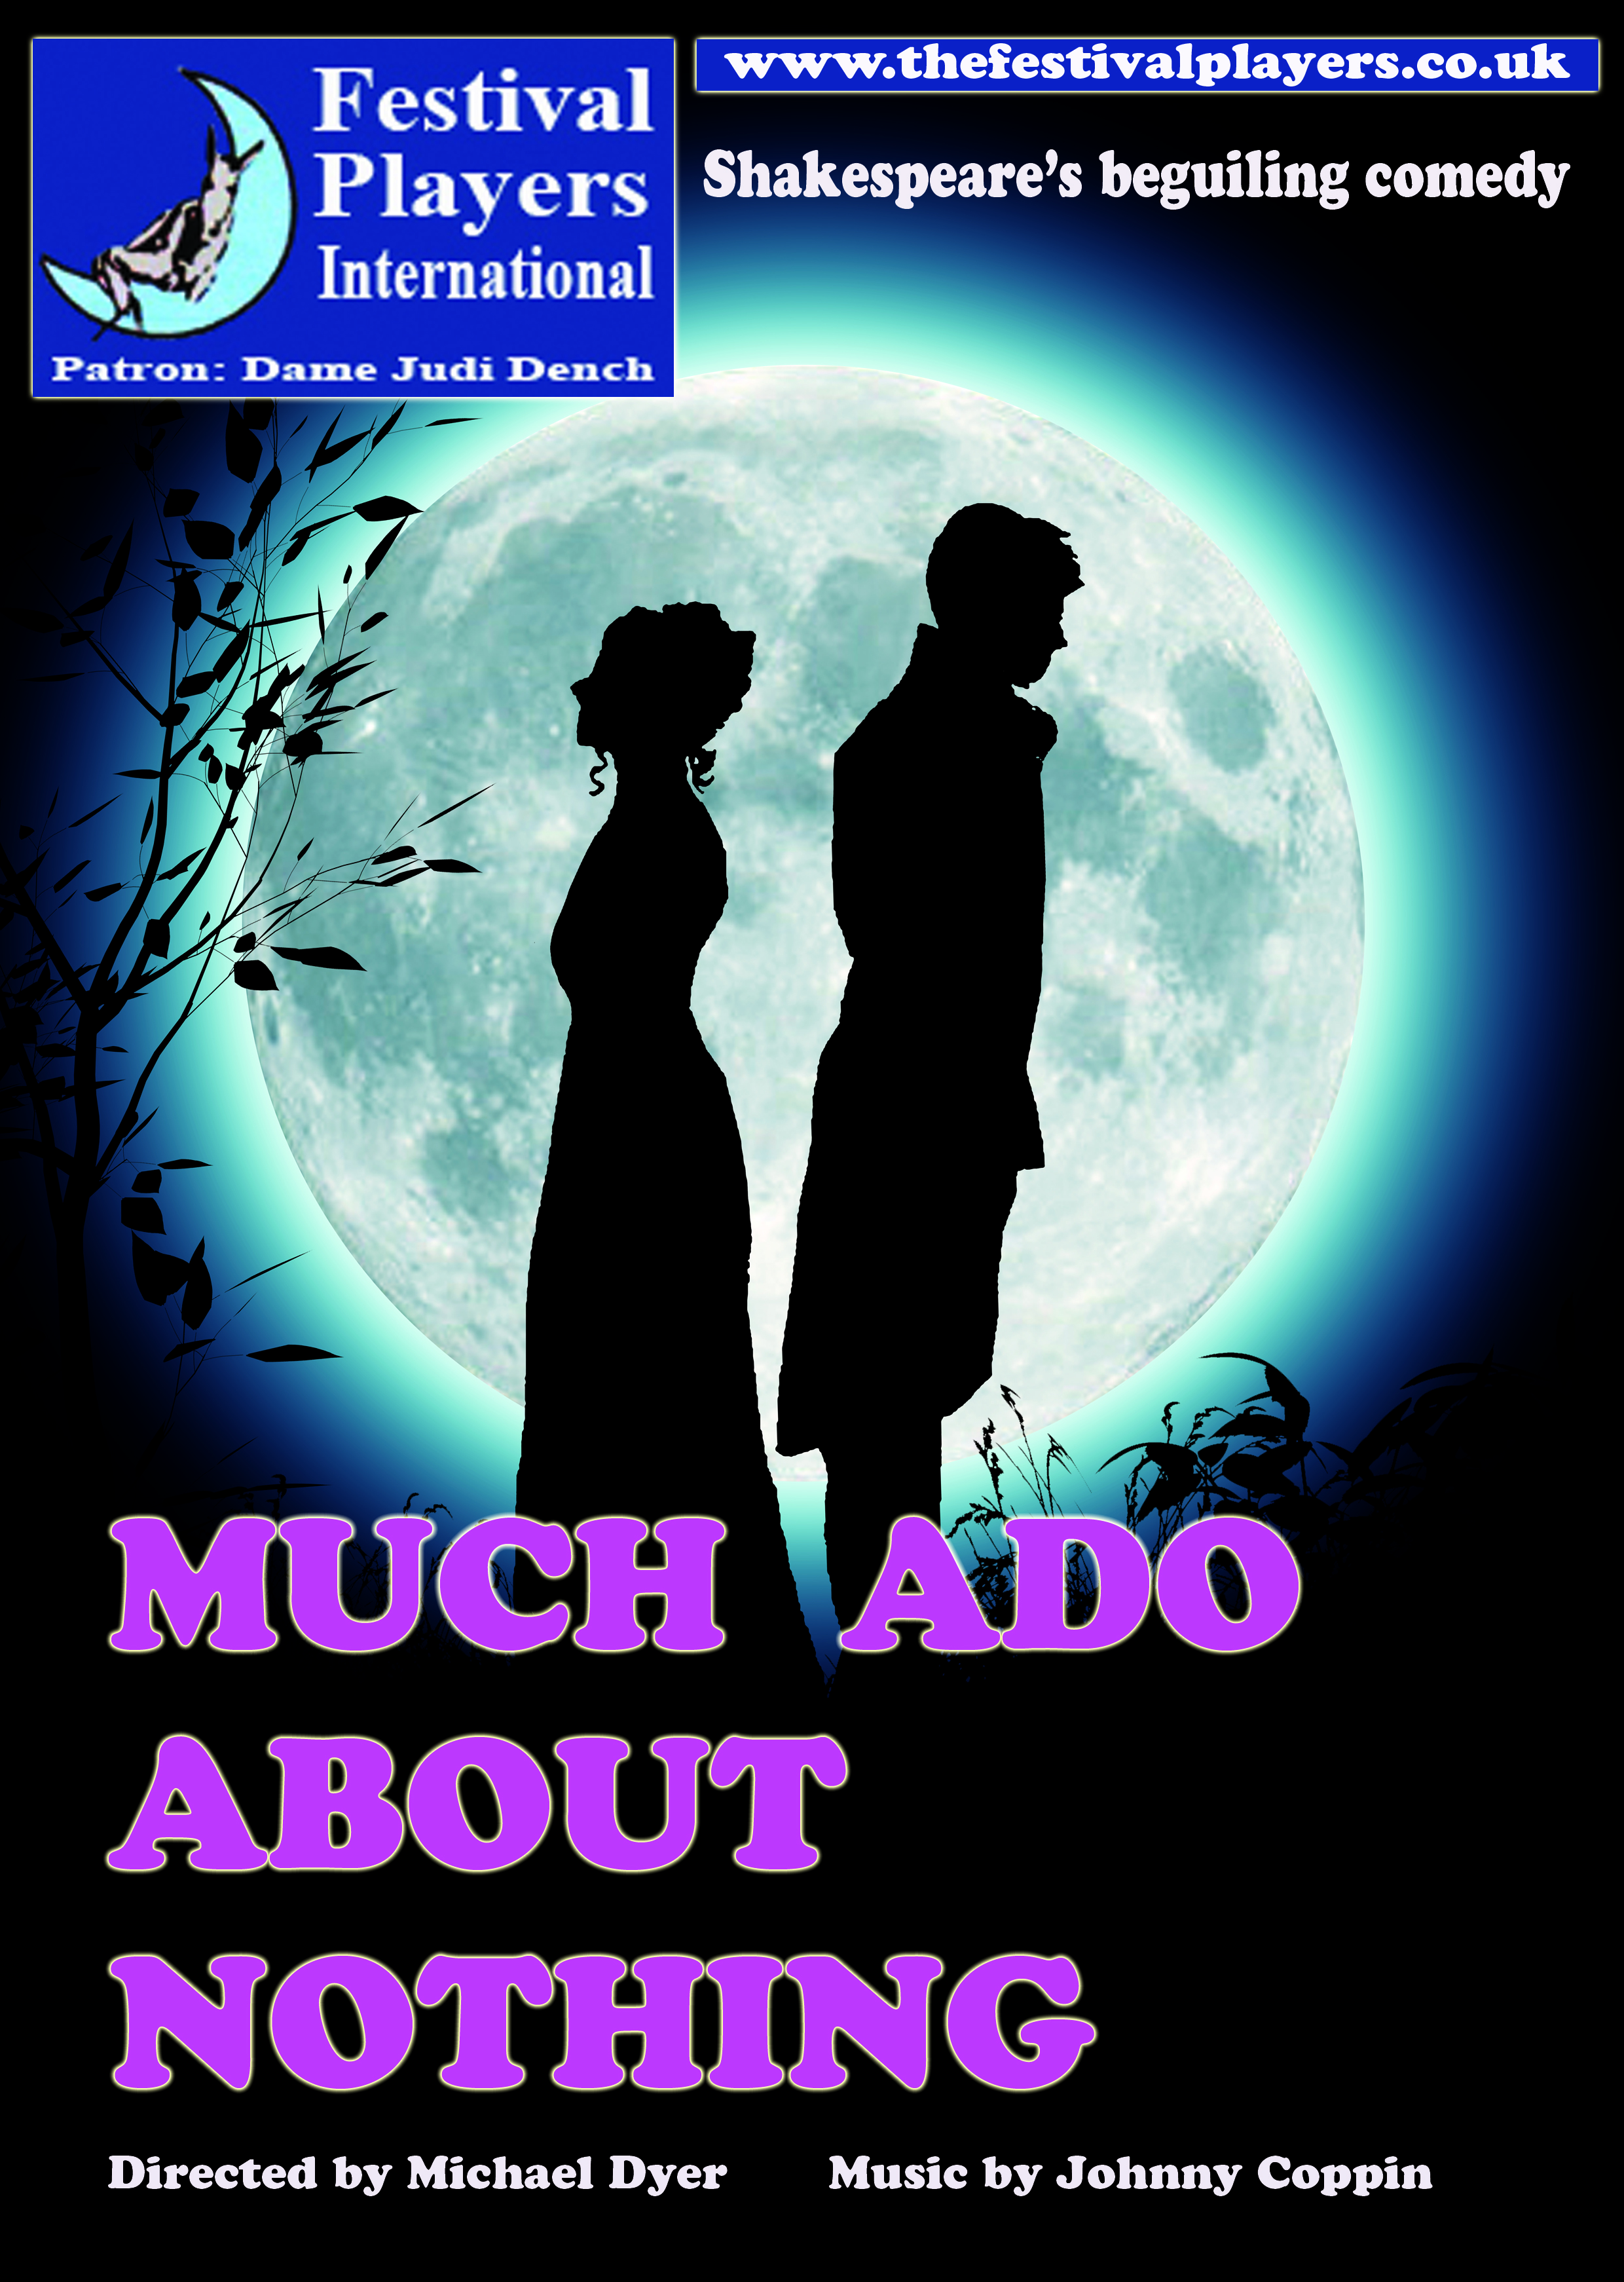 Much Ado About Nothing 2019 Program by Bell Shakespeare